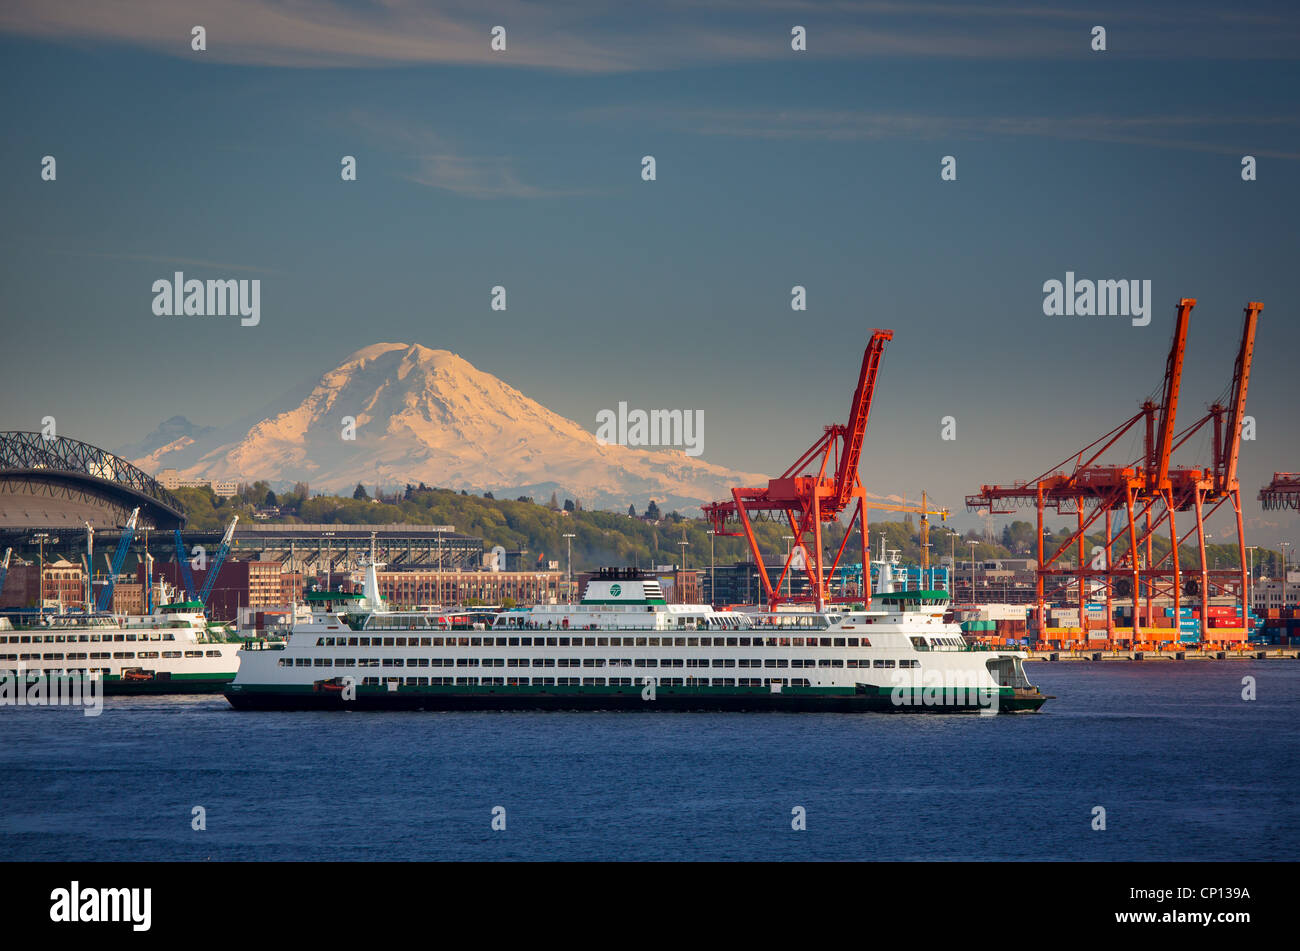 Washington state ferry in Seattle harbor with Mount Rainier in the distance Stock Photo